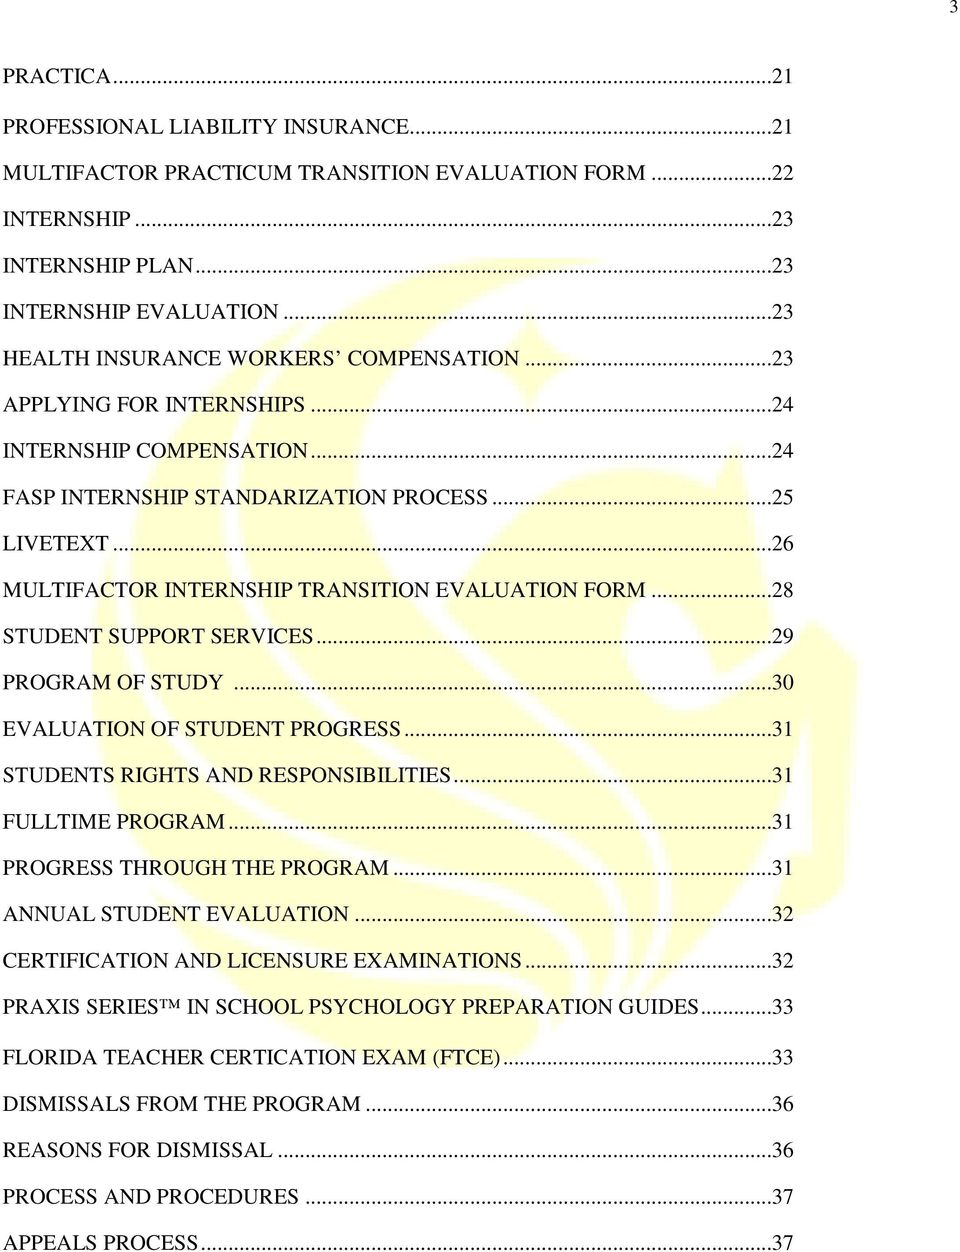 ..26 MULTIFACTOR INTERNSHIP TRANSITION EVALUATION FORM...28 STUDENT SUPPORT SERVICES...29 PROGRAM OF STUDY...30 EVALUATION OF STUDENT PROGRESS...31 STUDENTS RIGHTS AND RESPONSIBILITIES.